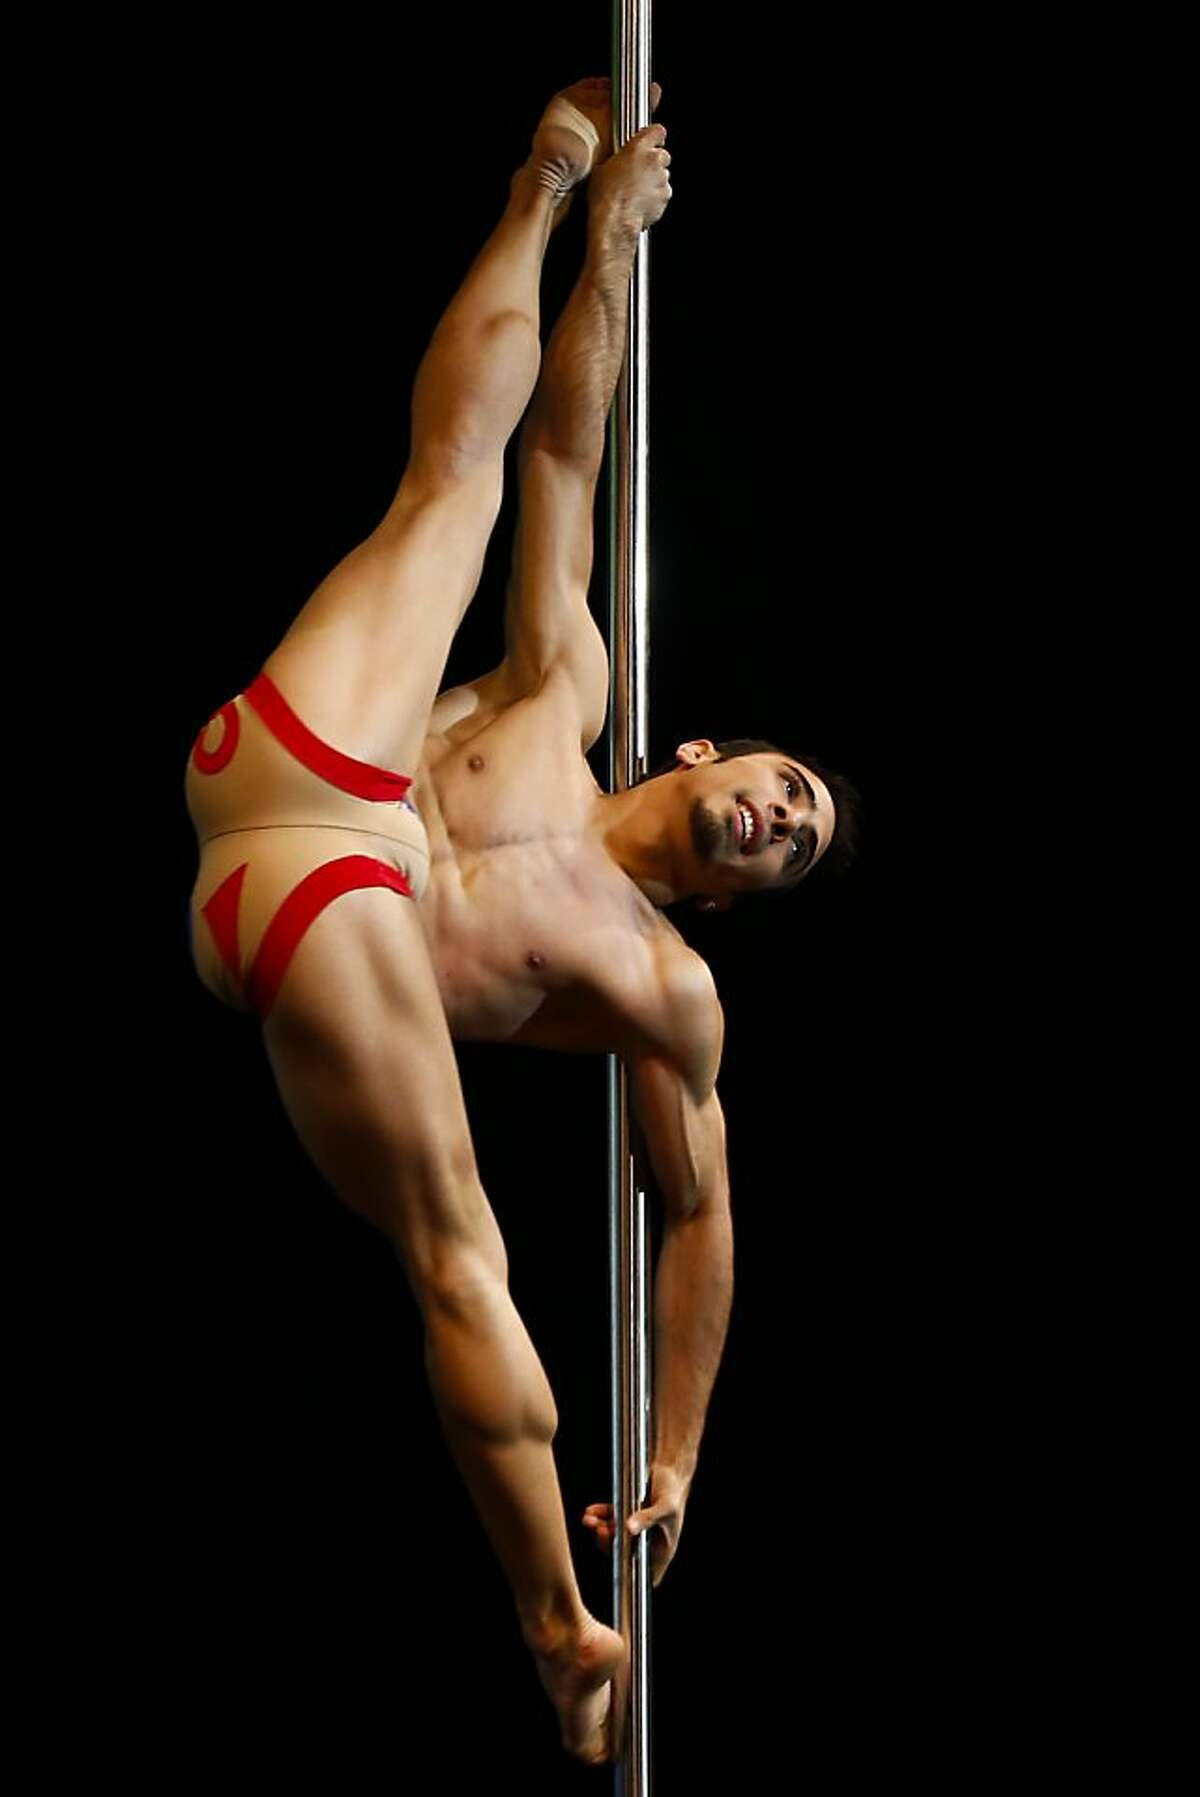 It's for guys too: The Pole Dance South America competition also has a men's category, which the very limber Gregoris Garcia of Venezuela is hoping to win.